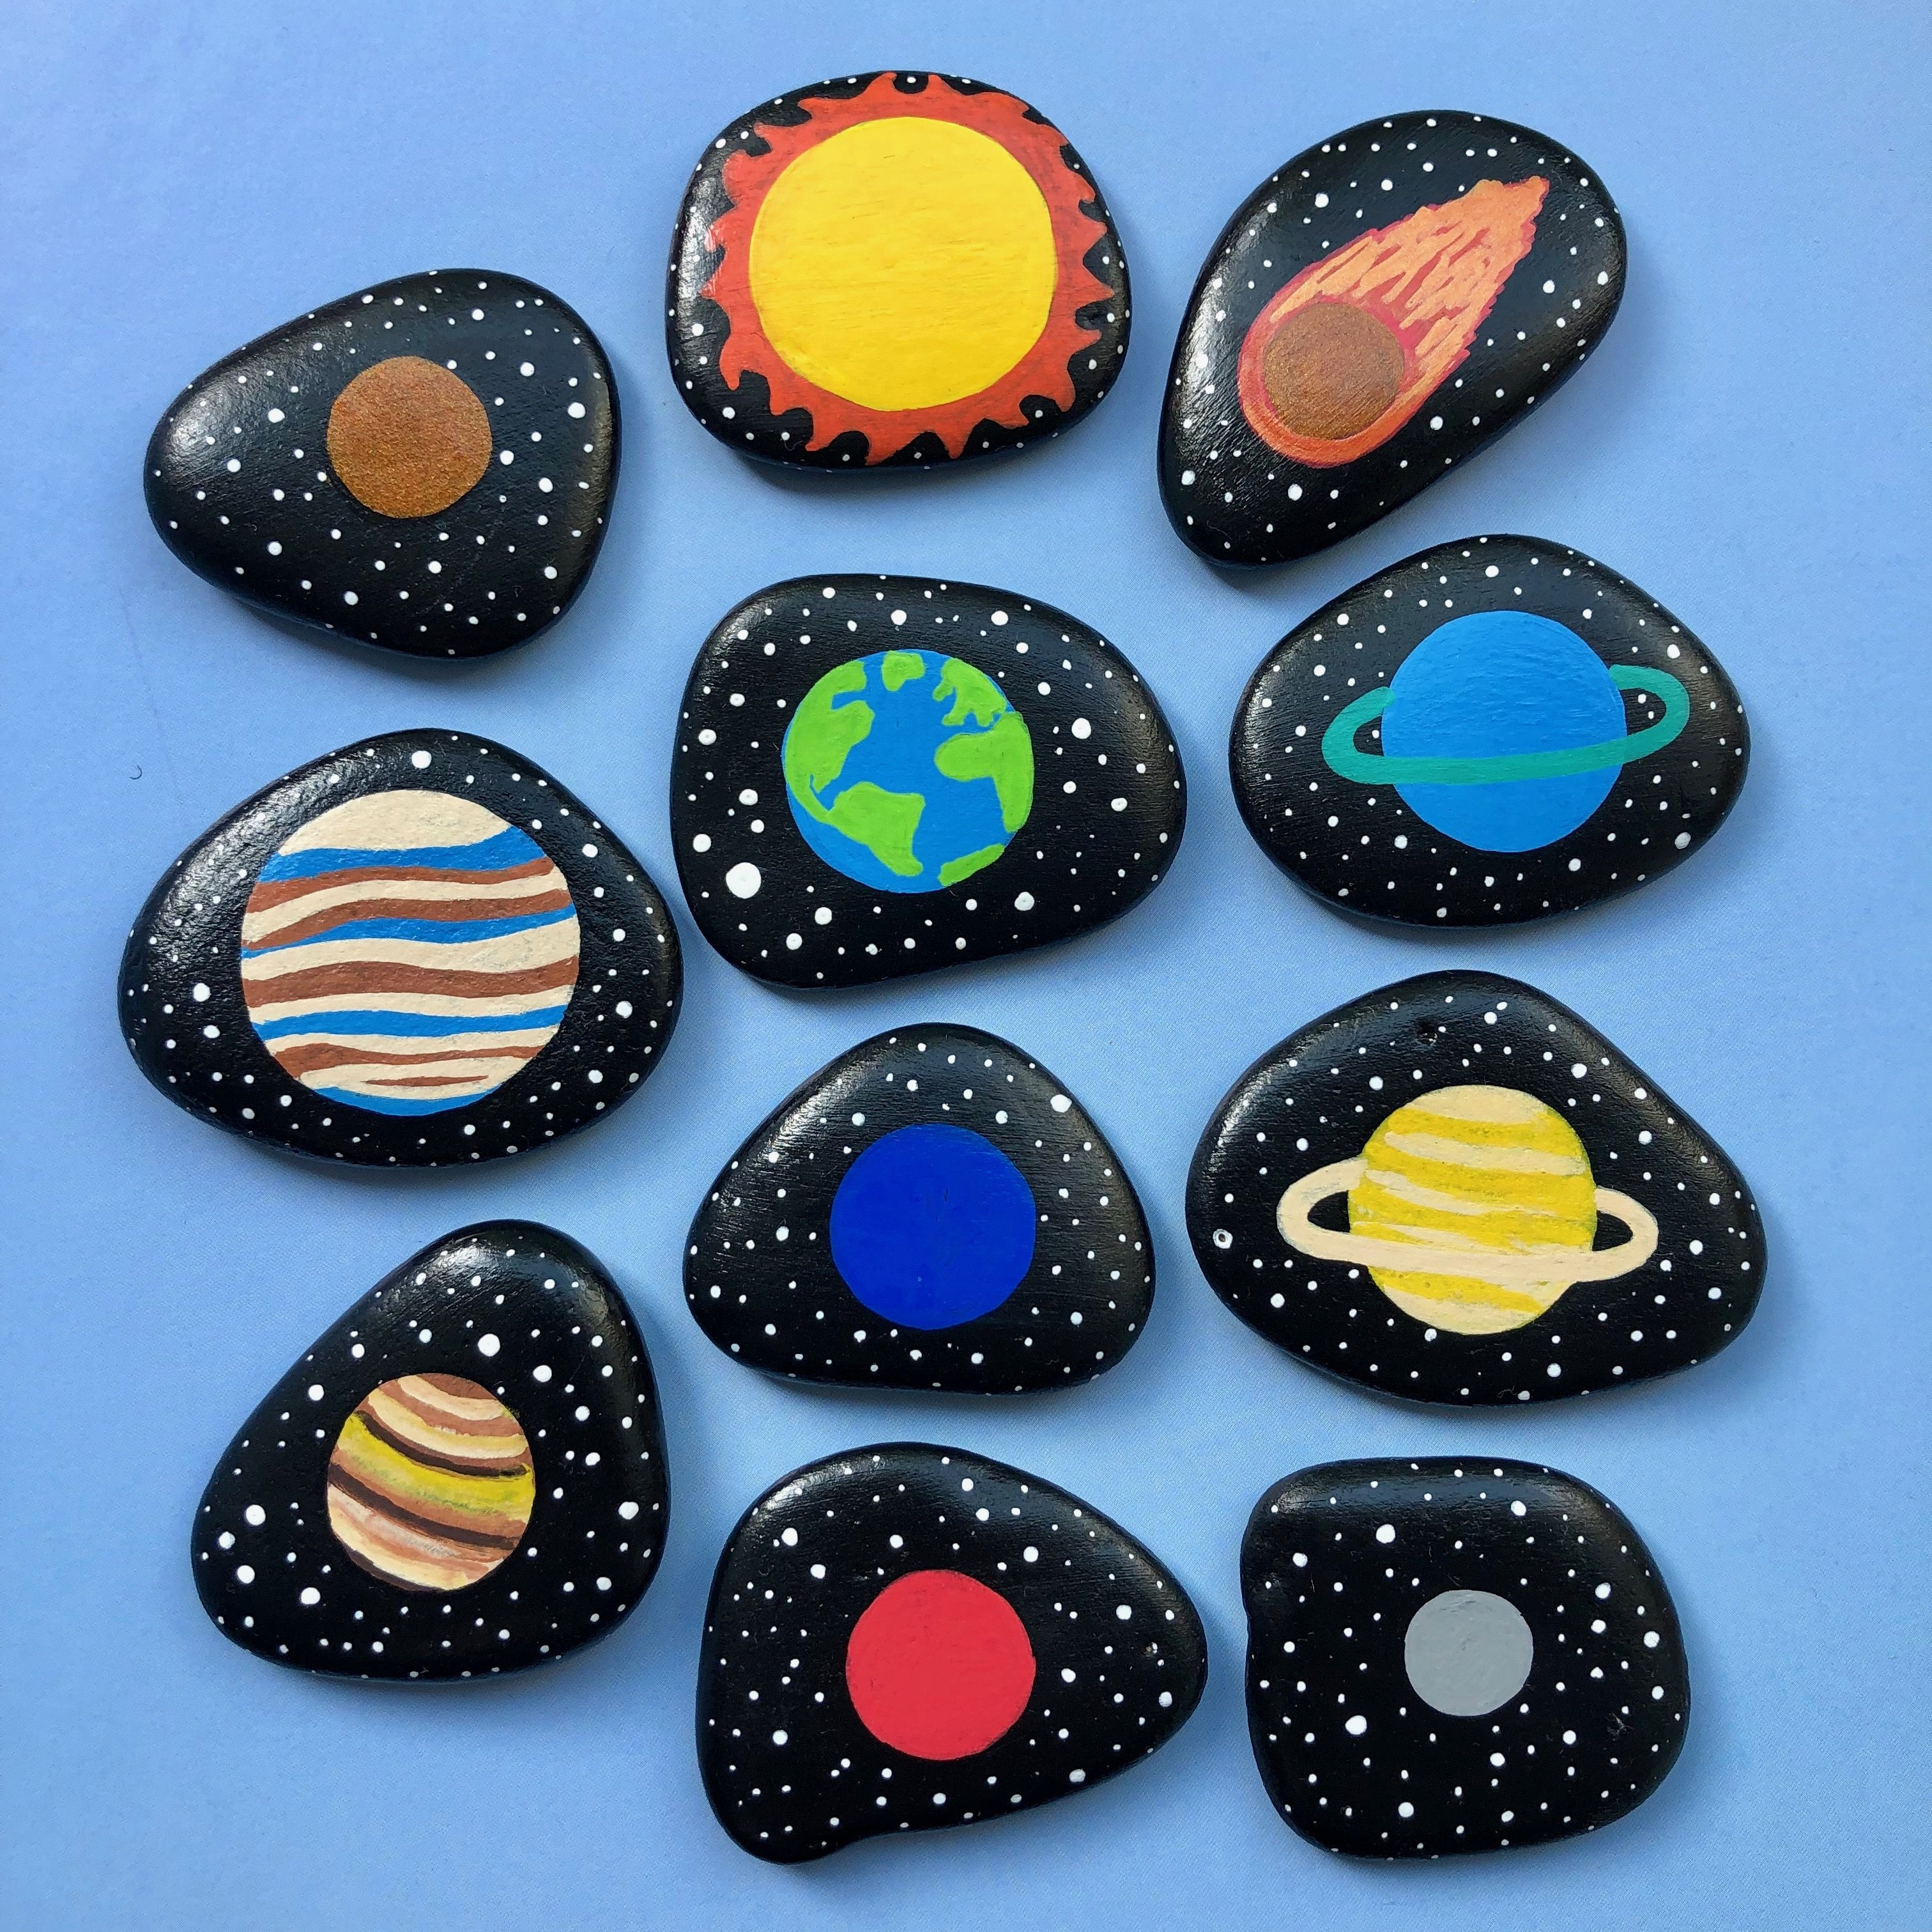 Space Toys, Story Stones, Solar System educational Montessori handmade toy, Planets activity, Outer Space playset for kids, Preschooler early learning. Custom order - made by Magic Stones Art Shop. #steingartenideen